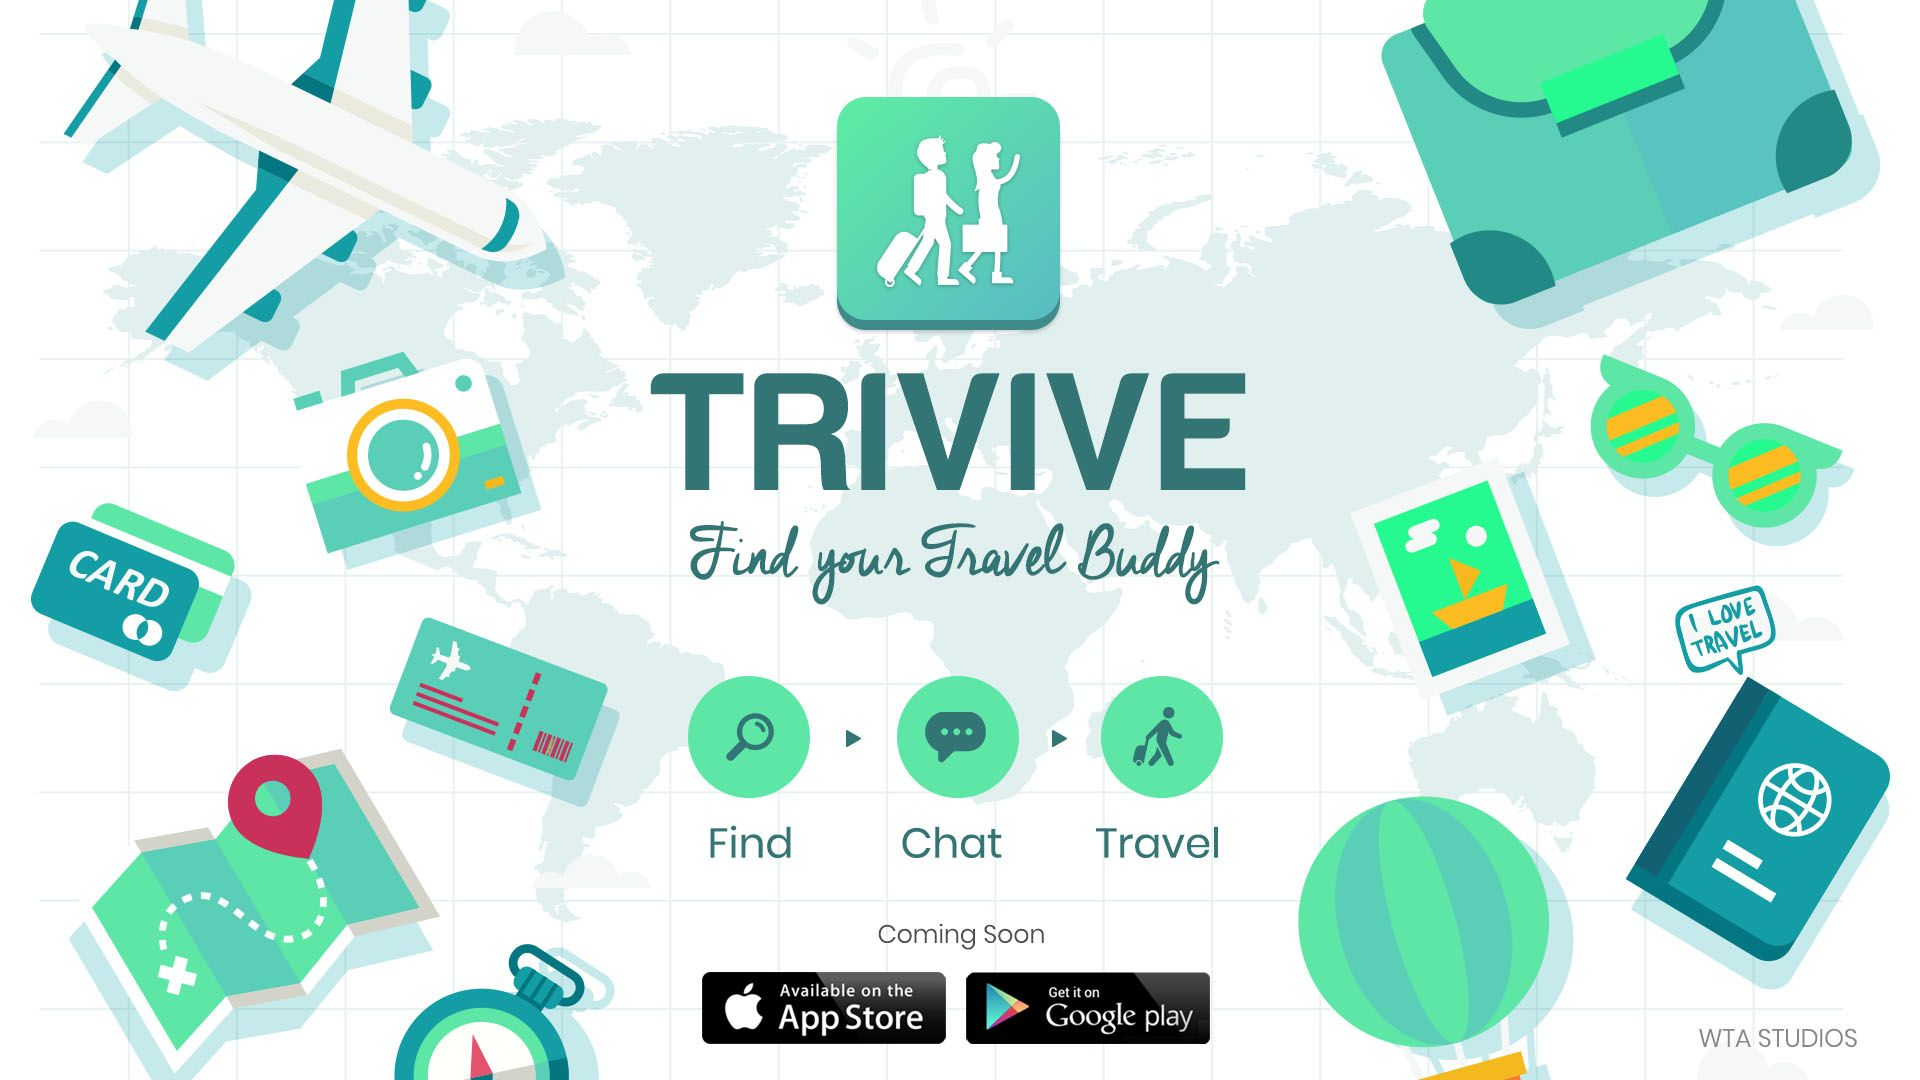 Travel mates dating app - Want to meet eligible single woman who share your zest for life?.